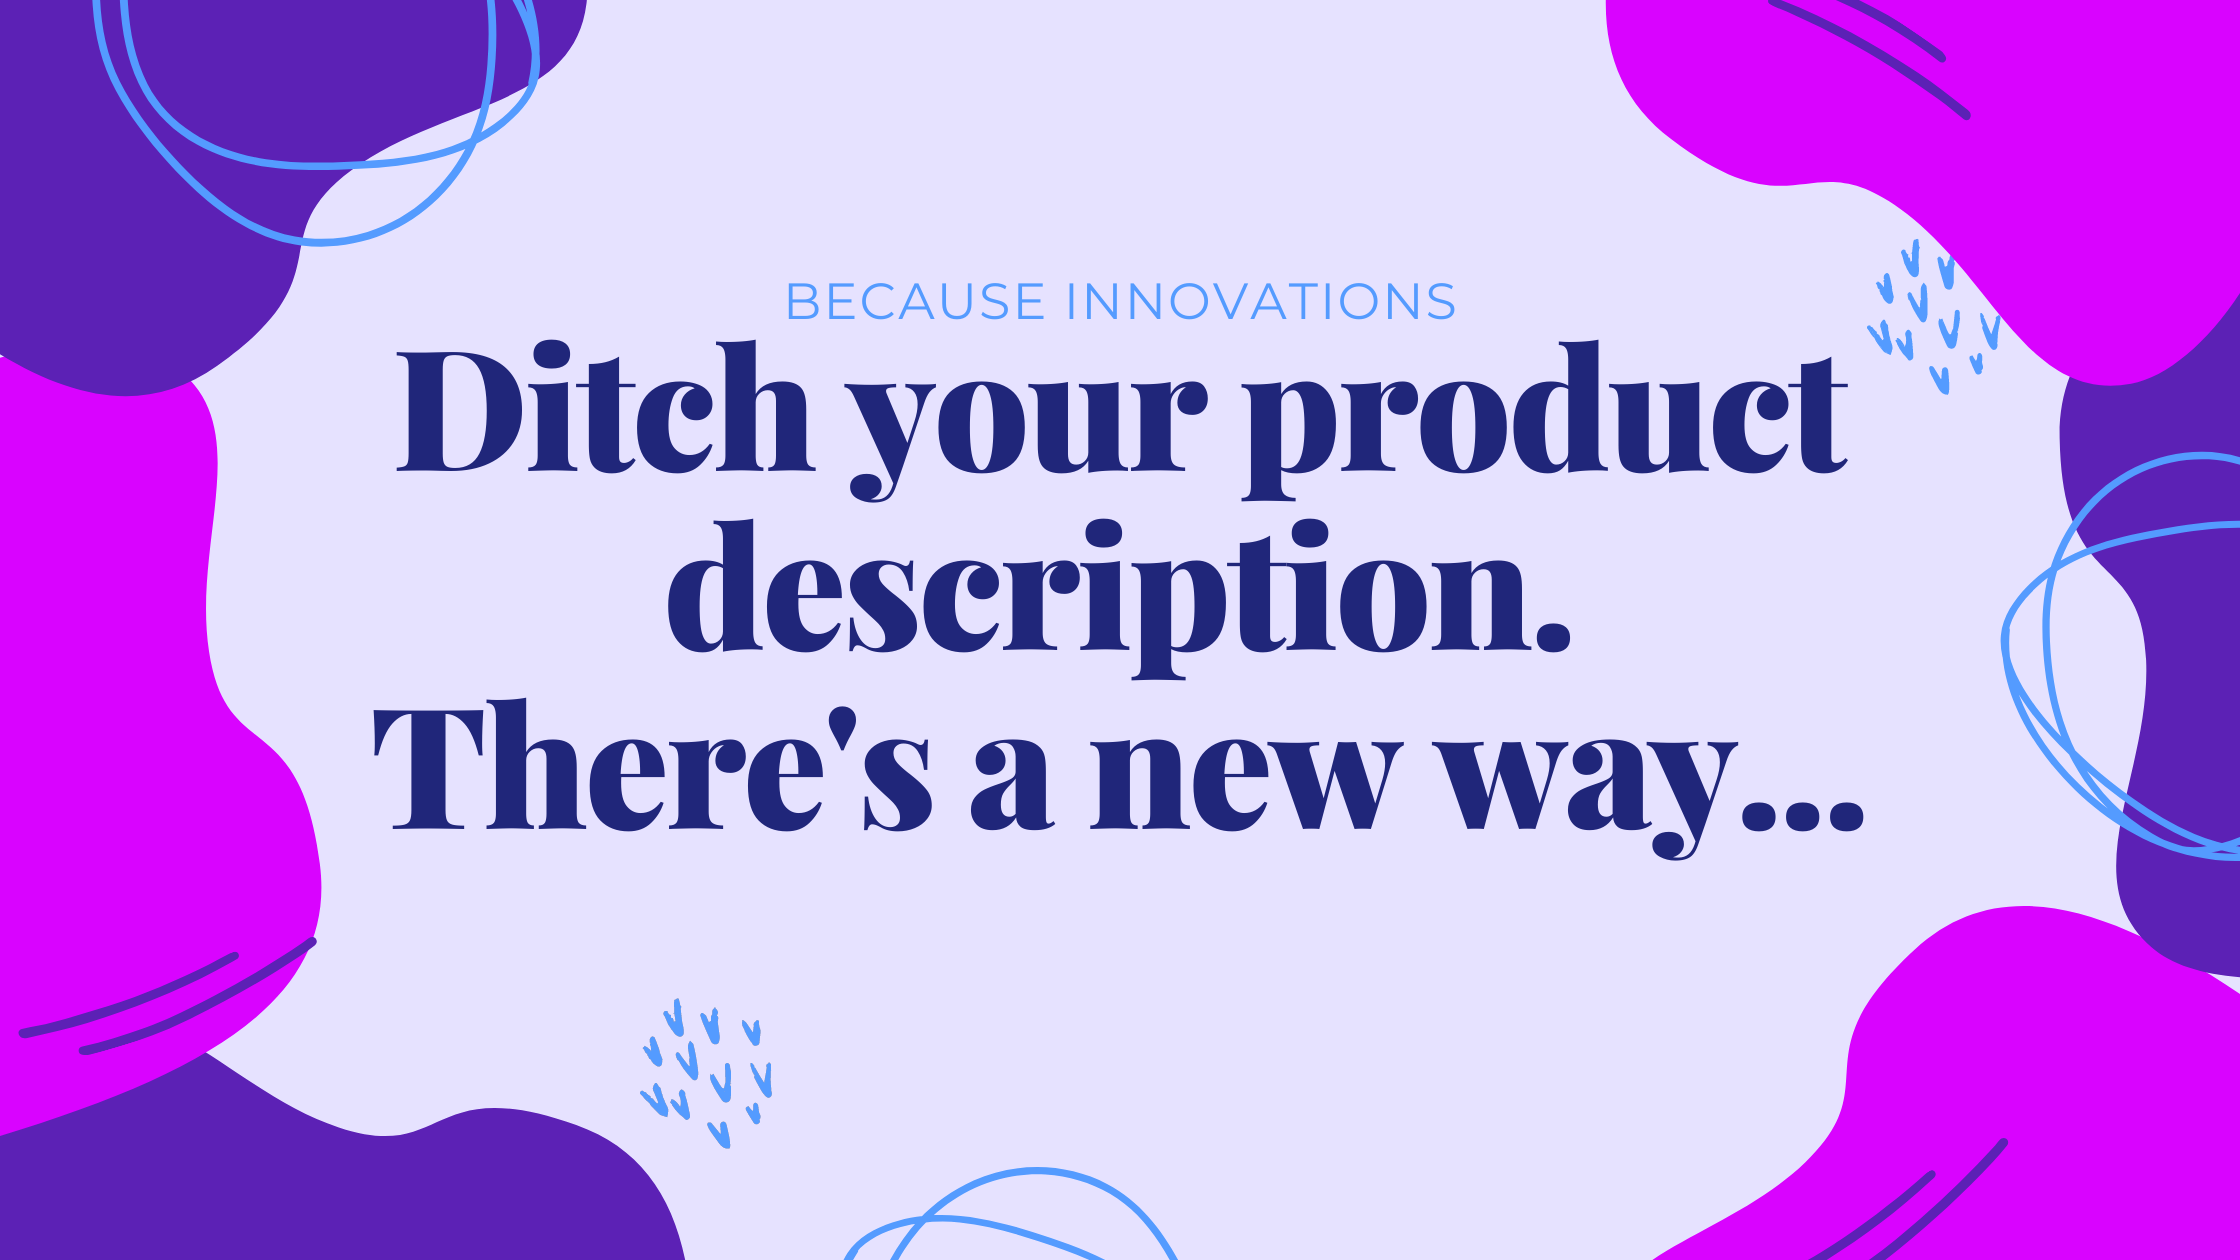 Ditch Your Product Description: There's a New Way